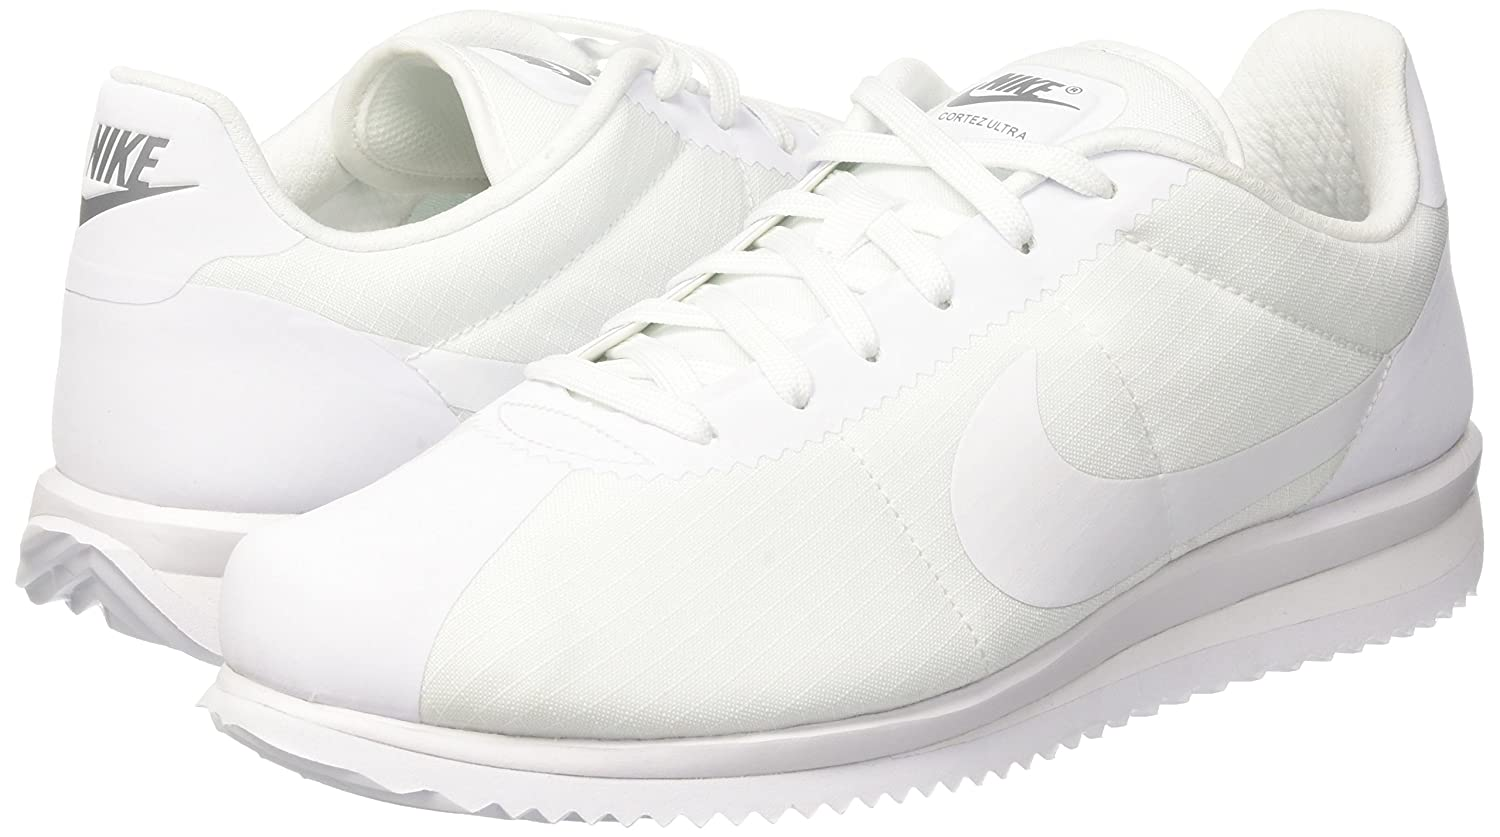 new style 4018a f9ef4 Nike Men's Cortez Ultra White/White Cool Grey Casual Shoe 9 ...